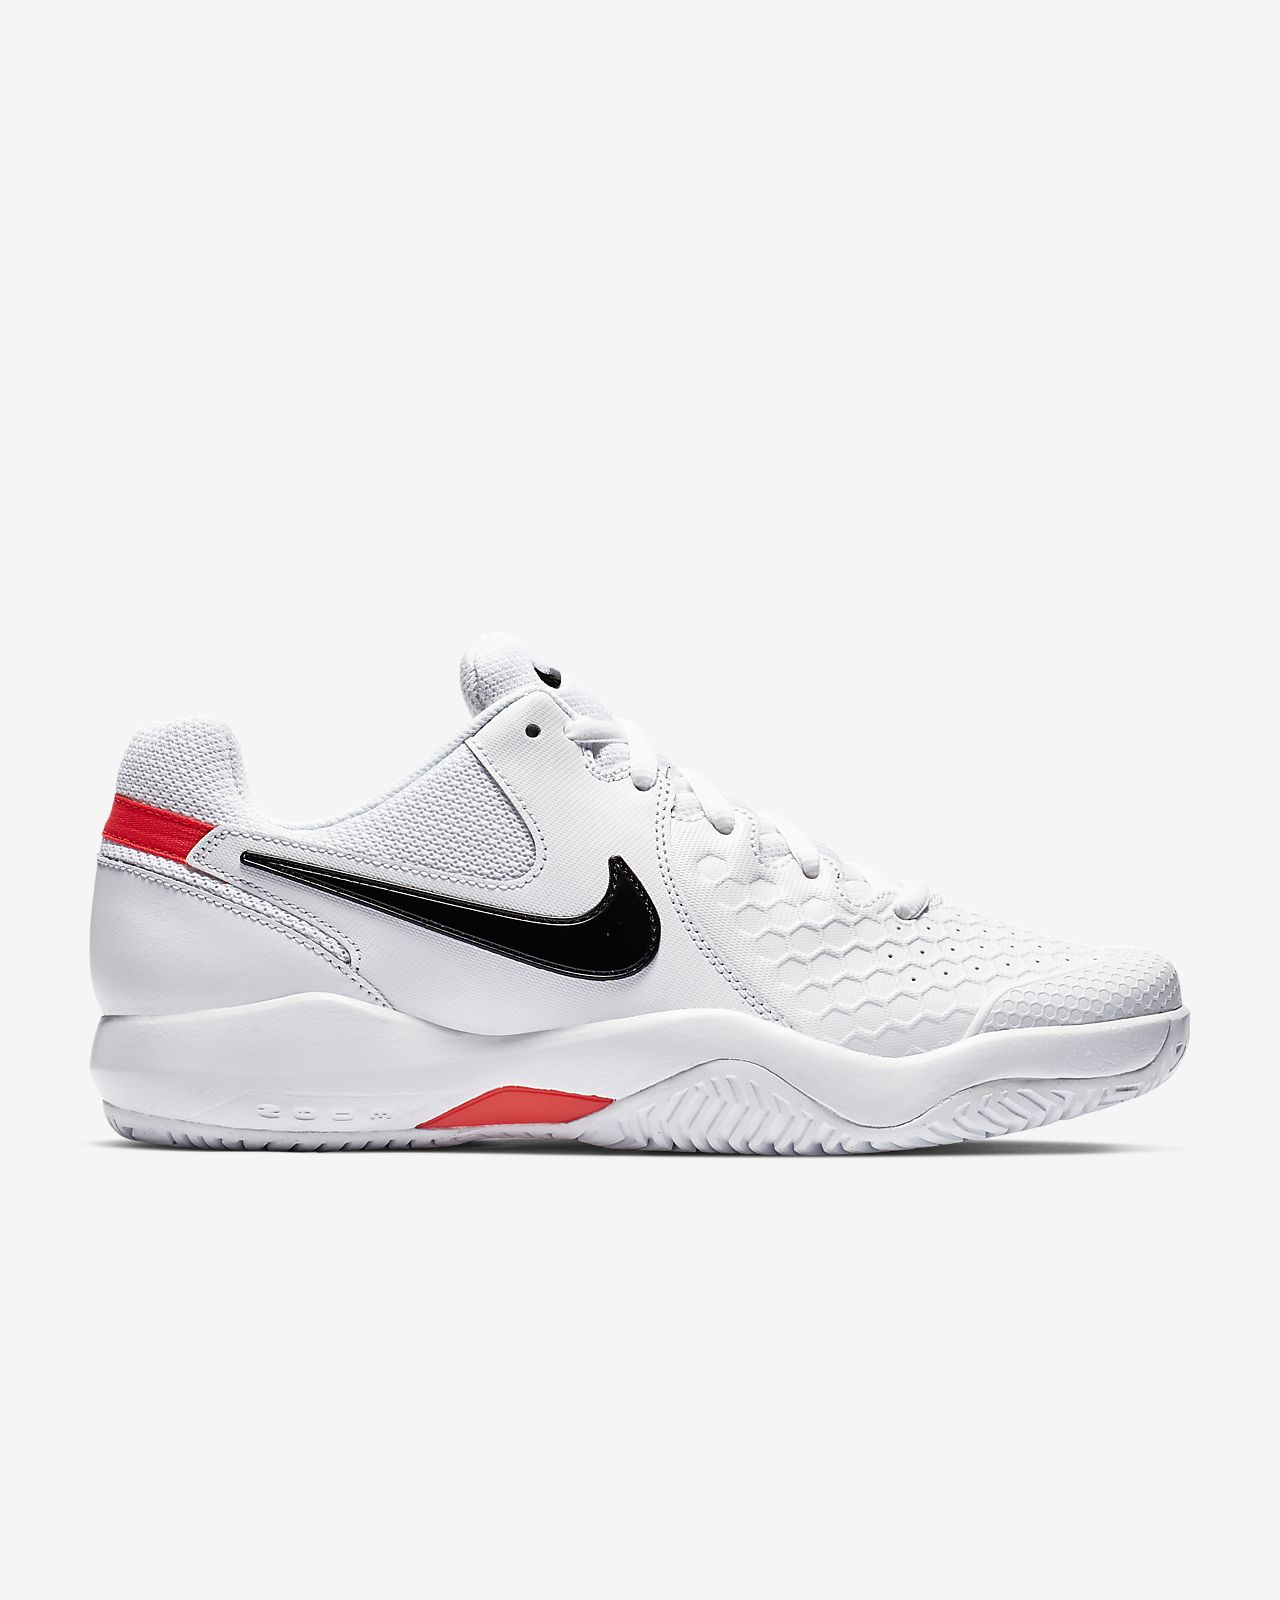 ebd04dbbff1a2 NikeCourt Air Zoom Resistance Men s Hard Court Tennis Shoe. Nike.com VN